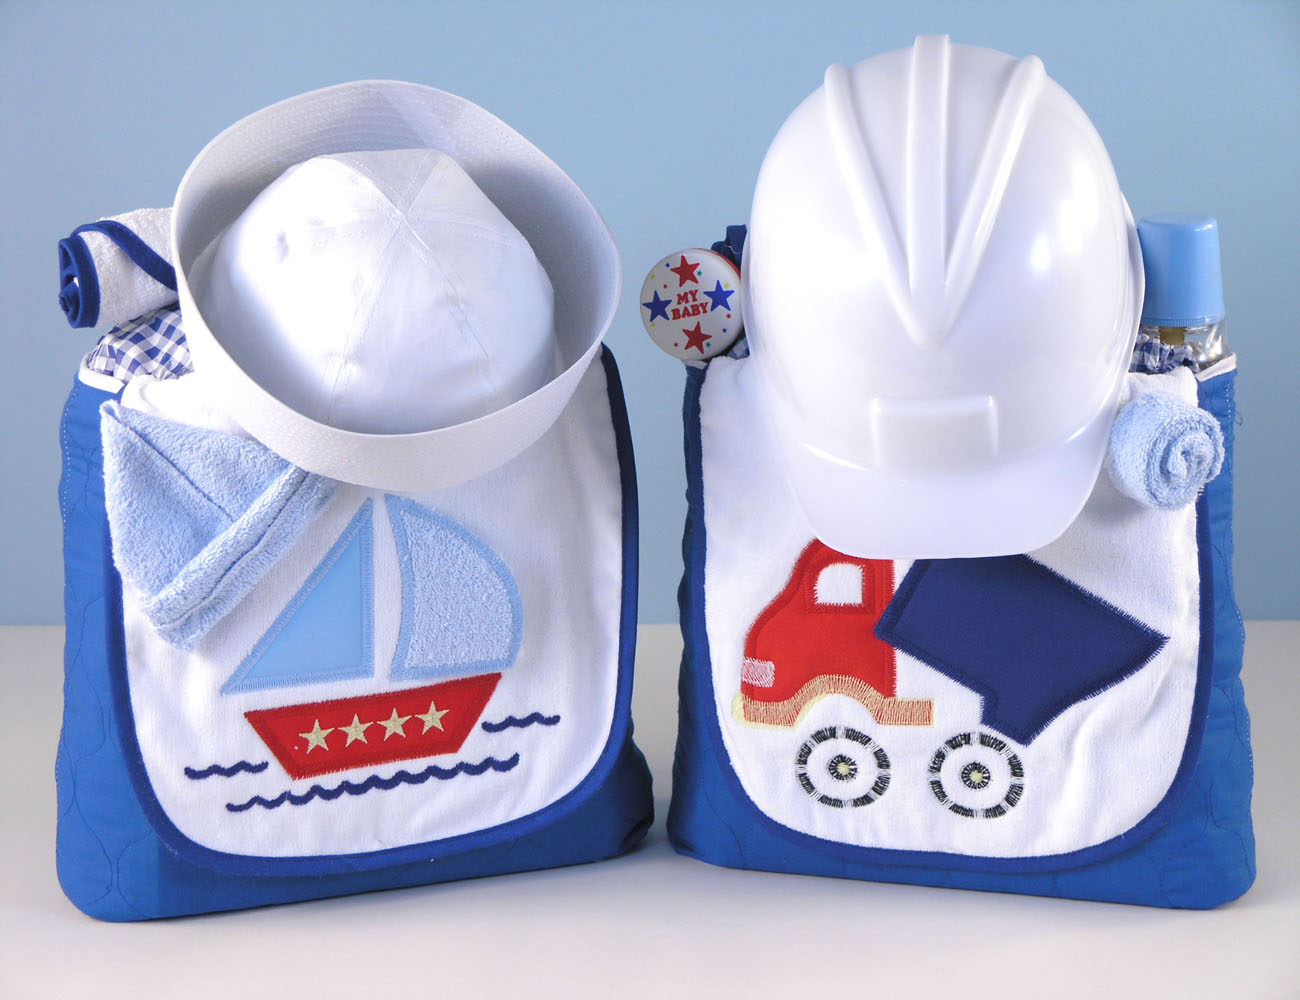 Awesome Sailboat Truck Diaper Tote Baby Boy Gifts Baby Boy Gifts Sailboat Truck Diaper Totes Baby Boy Gifts Target Baby Boy Gifts One Year baby Baby Boy Gifts